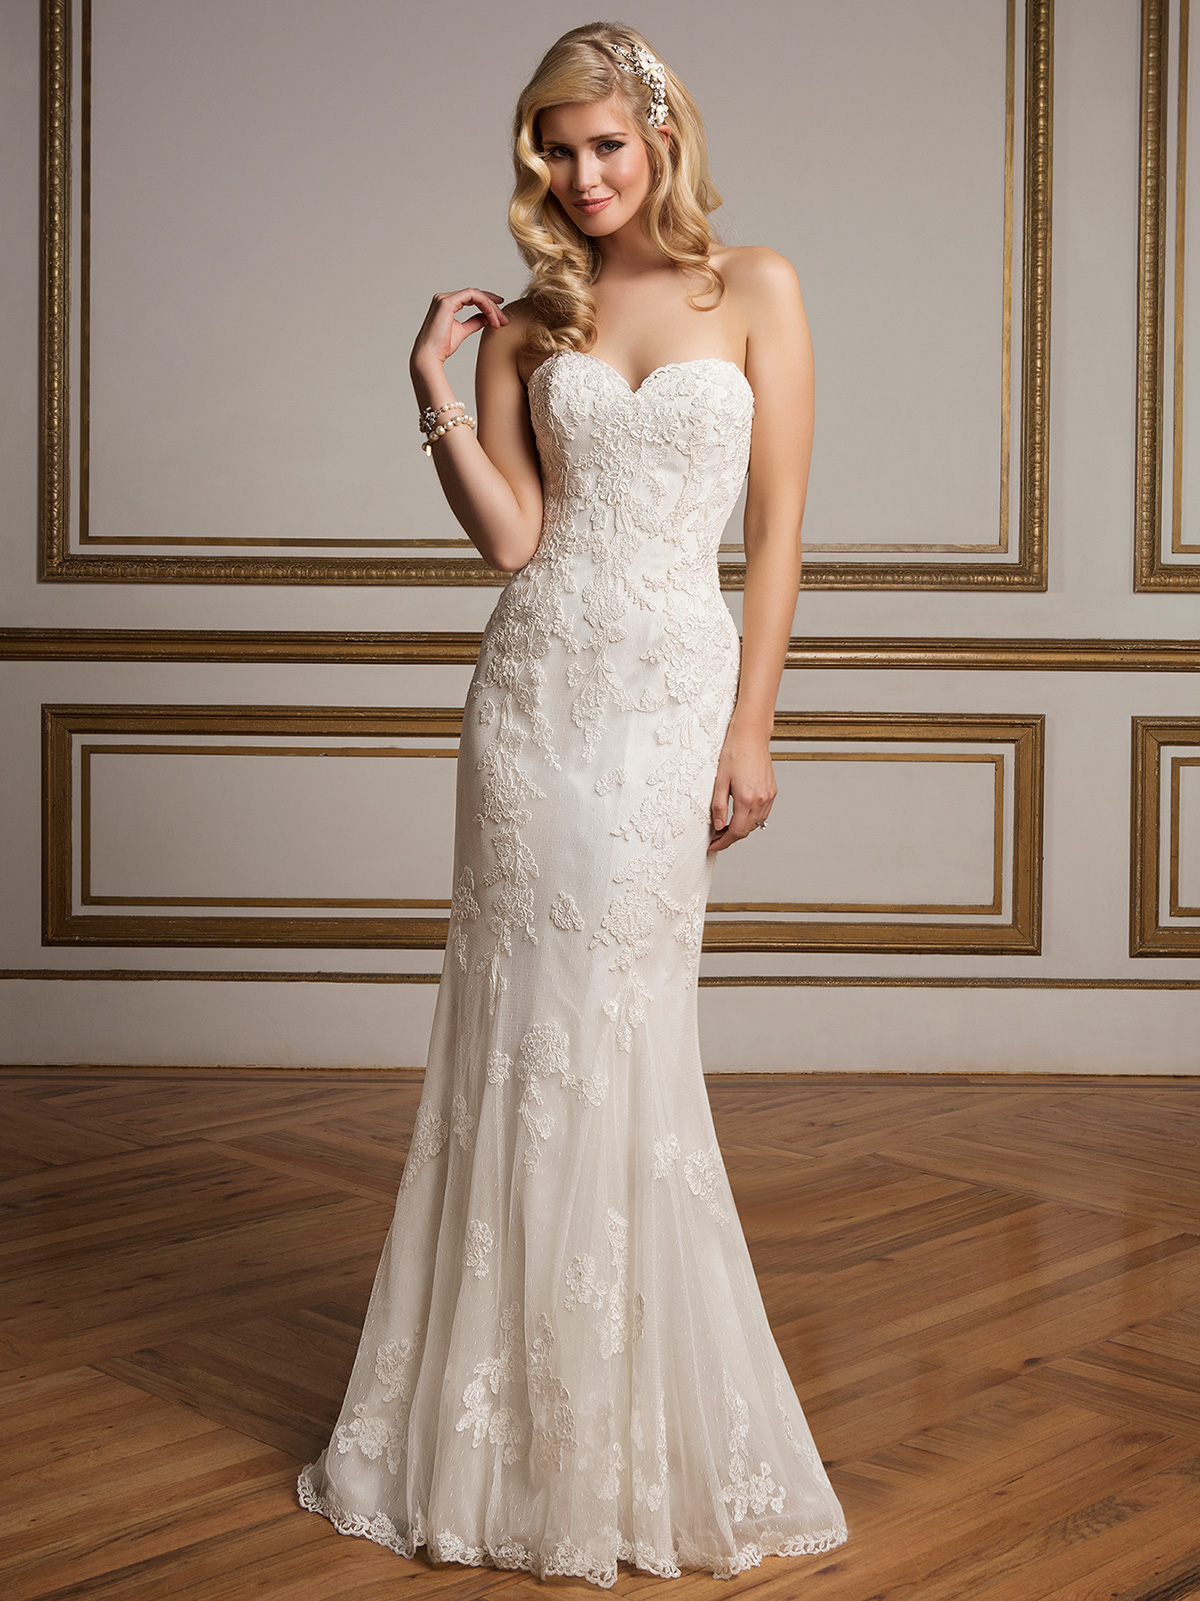 Justin Alexander 8830 Sweetheart Beaded Wedding Dress